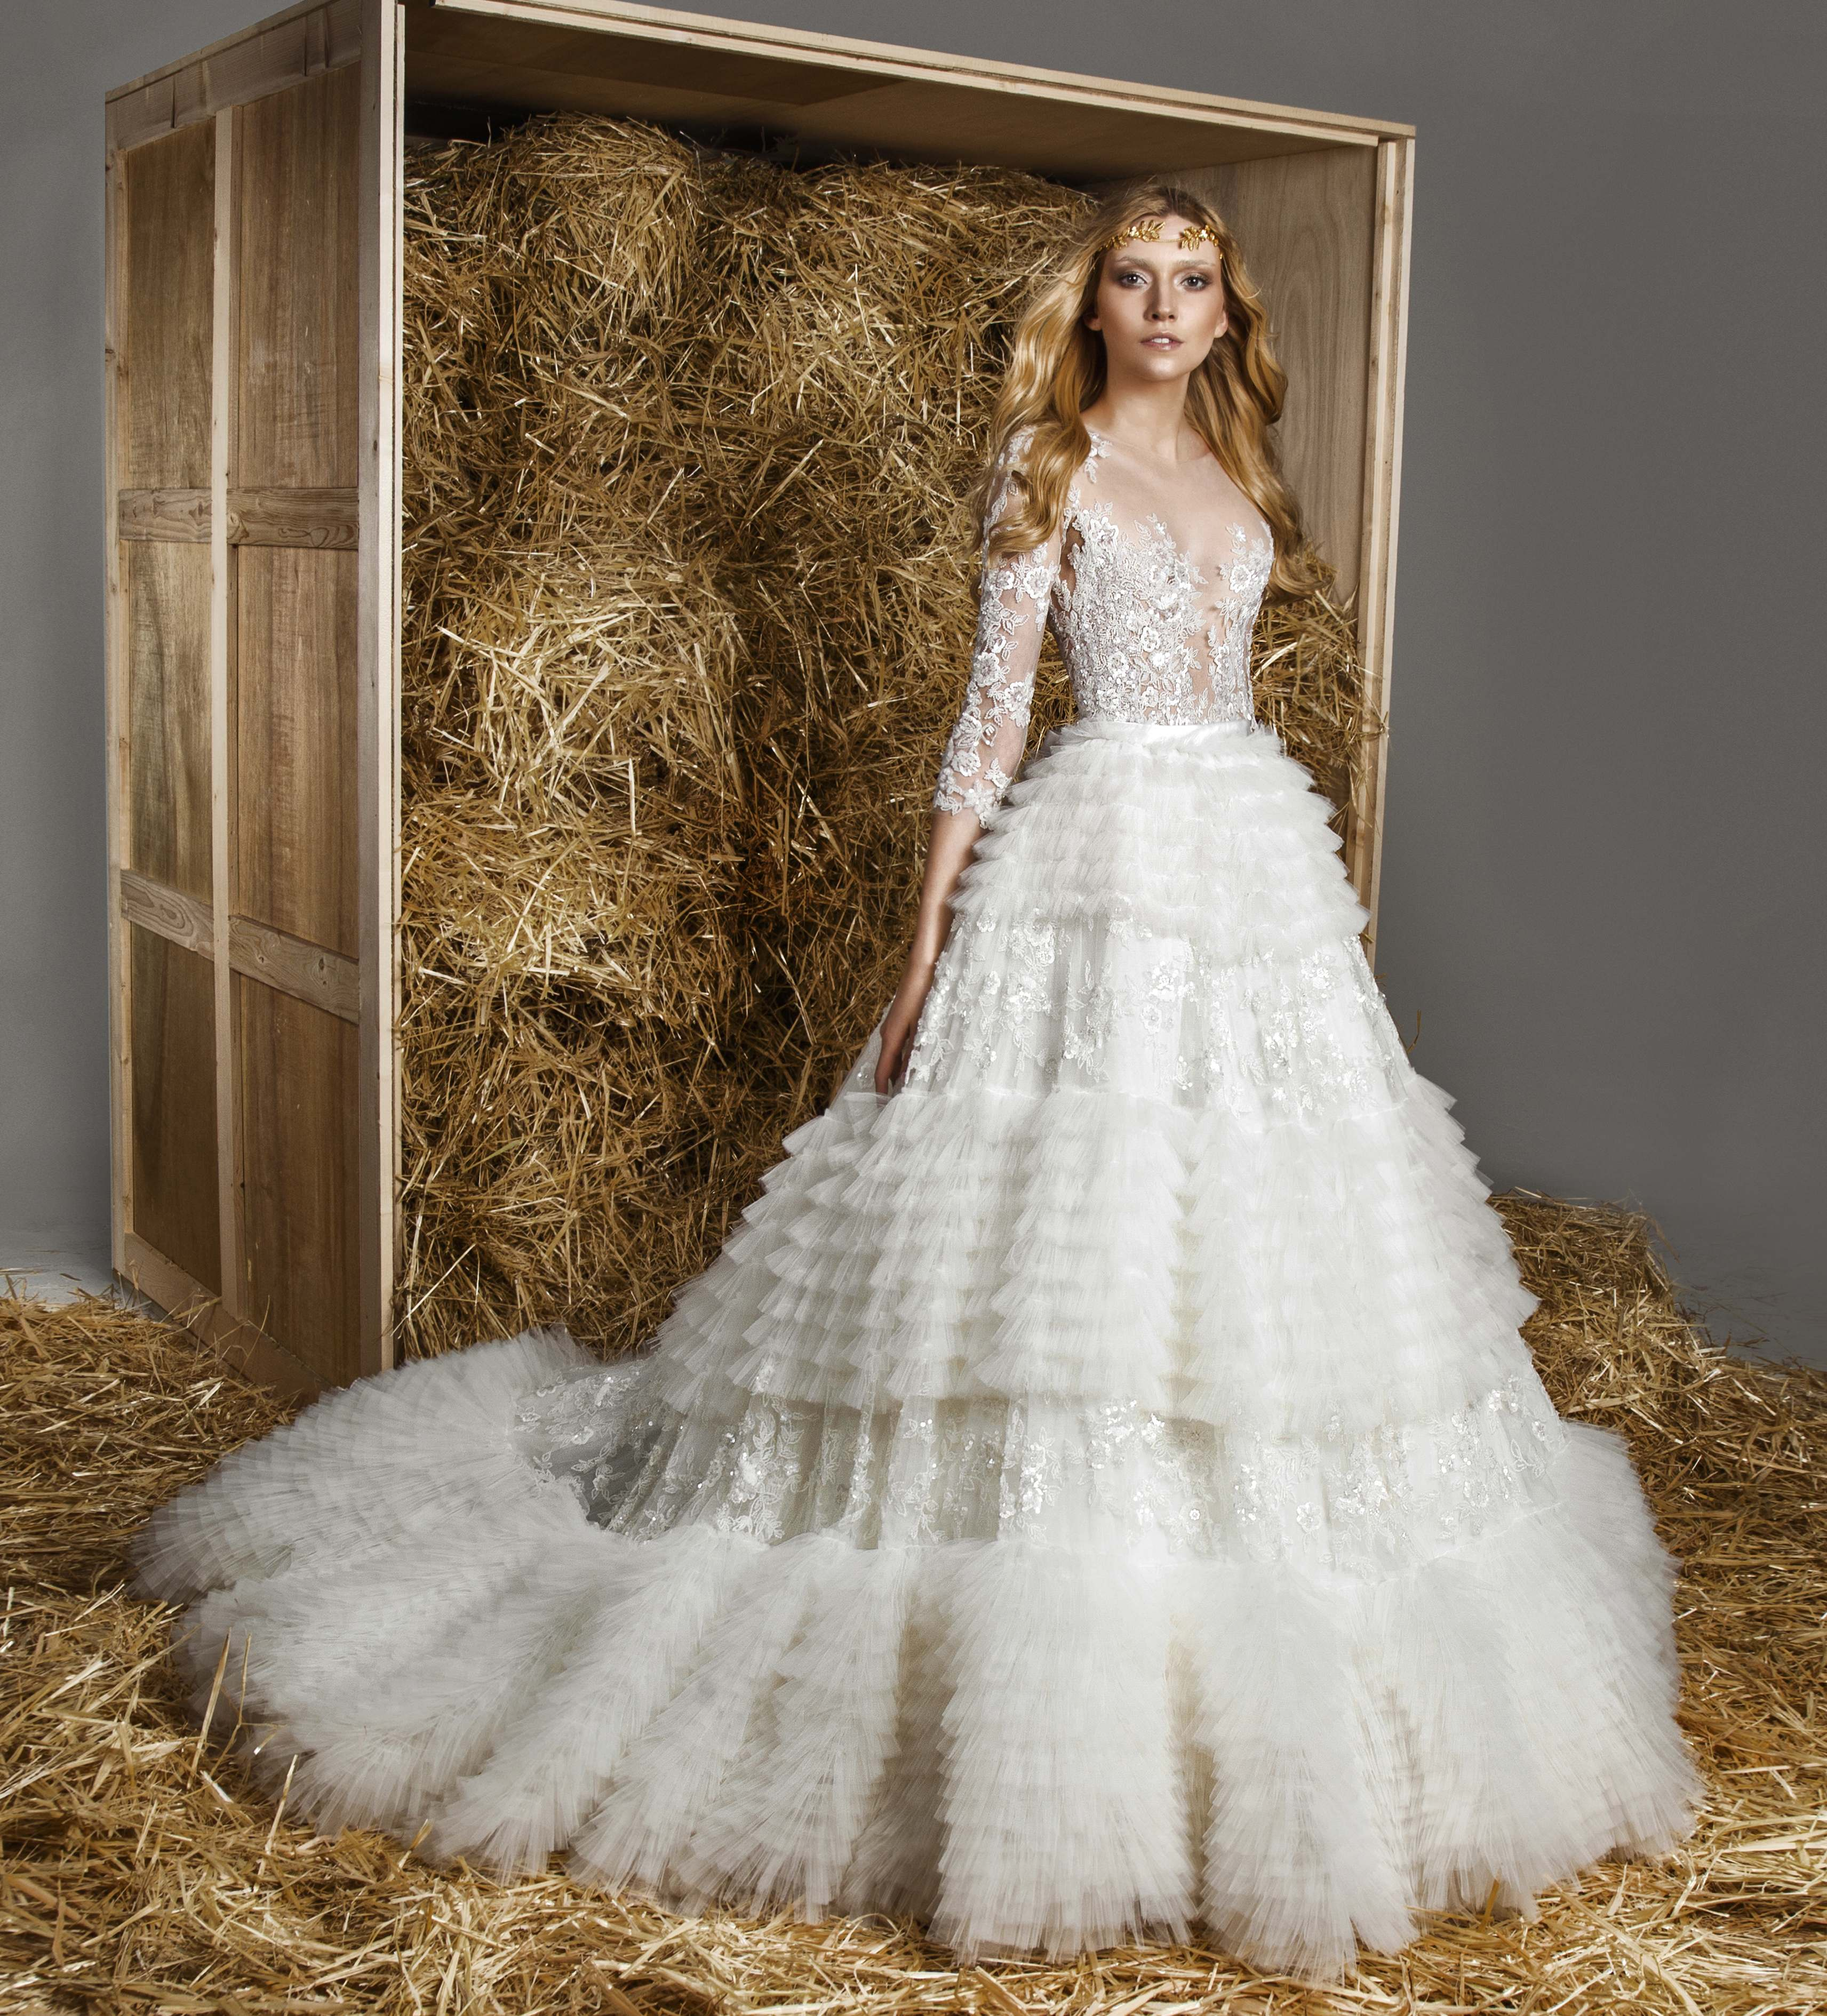 Bridal dreams zuhair murad now available in singapore for Amazon designer wedding dresses